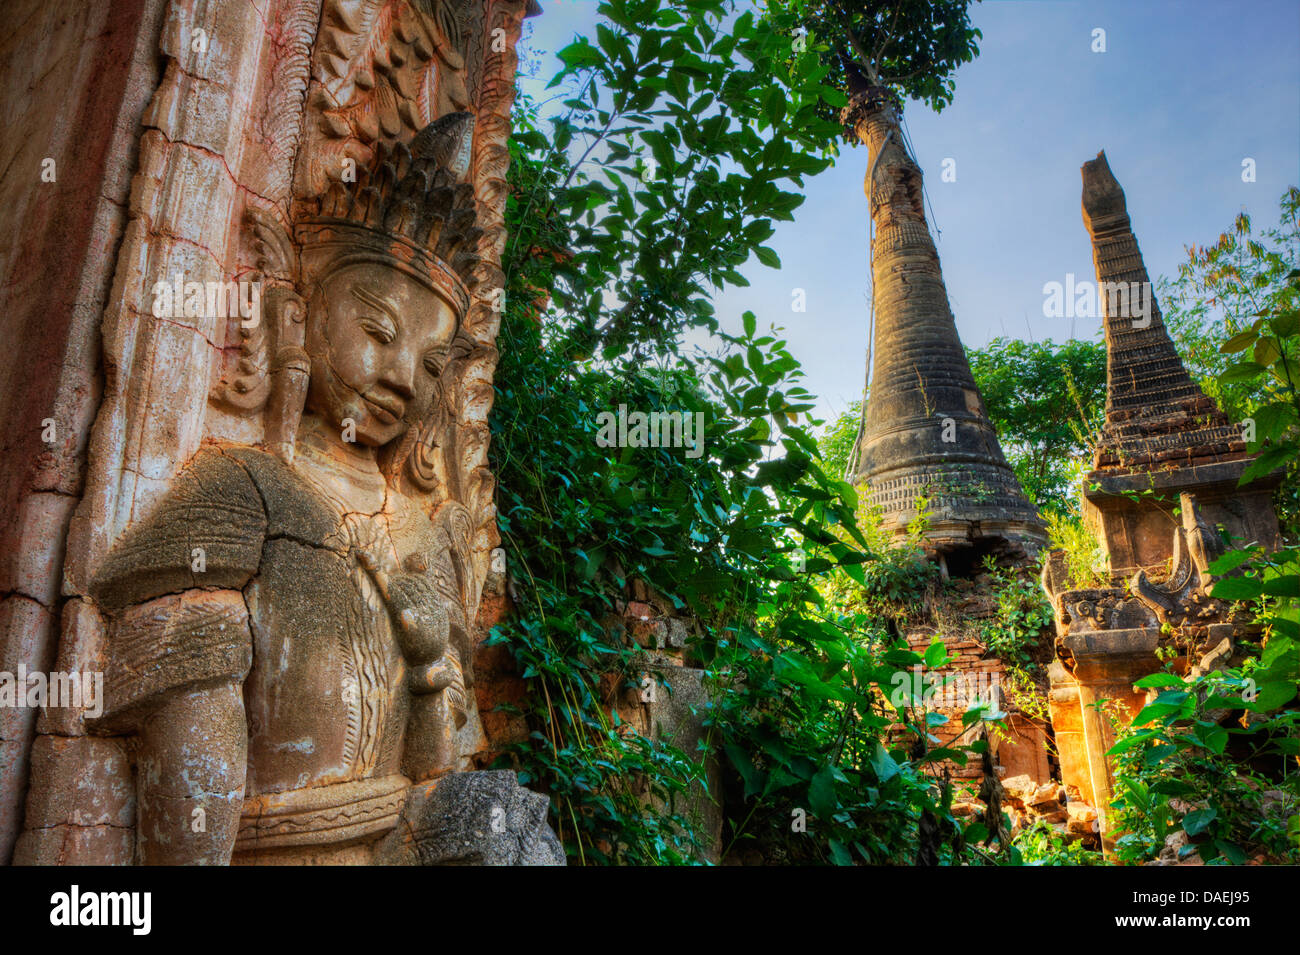 Stucco BUDDHIST DEITIES at NYAUNG OHAK located at INDEIN consisting of ancient SHRINES, INLE LAKE, Burma - Stock Image